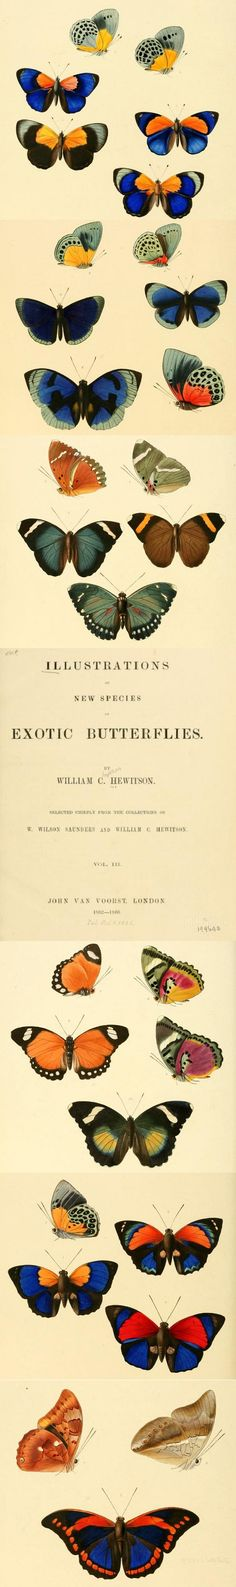 Click to read this butterfly book from 1856. These butterflies are great inspiration for woodworking, craft, art and many other DIY projects!